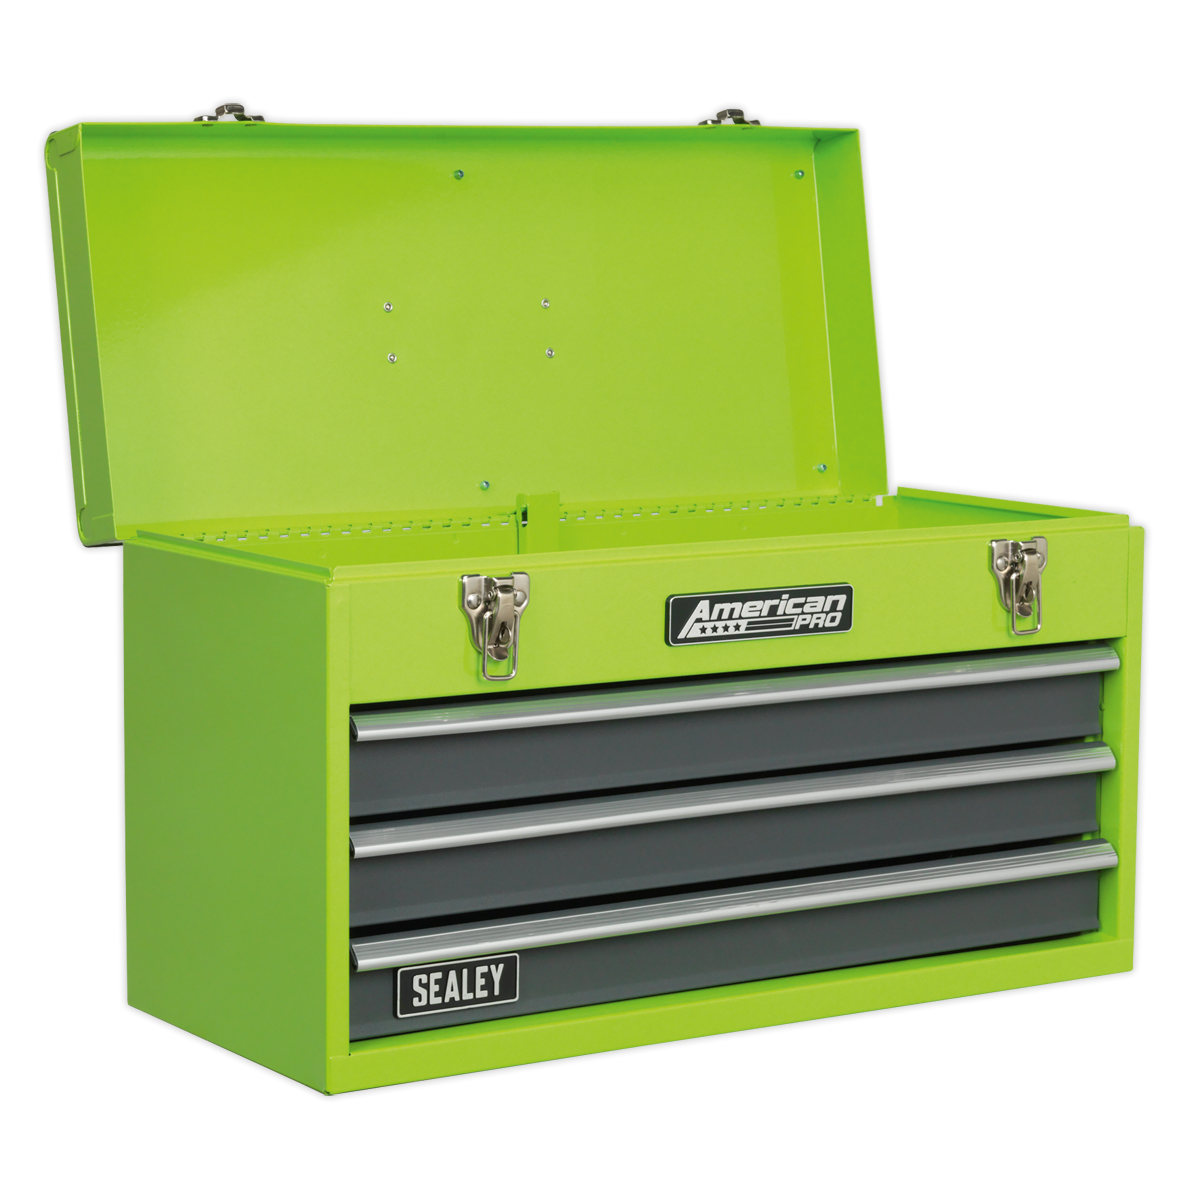 SEALEY Tool Chest 3 Drawer Portable Ball Bearing Slides Hi-Vis Green